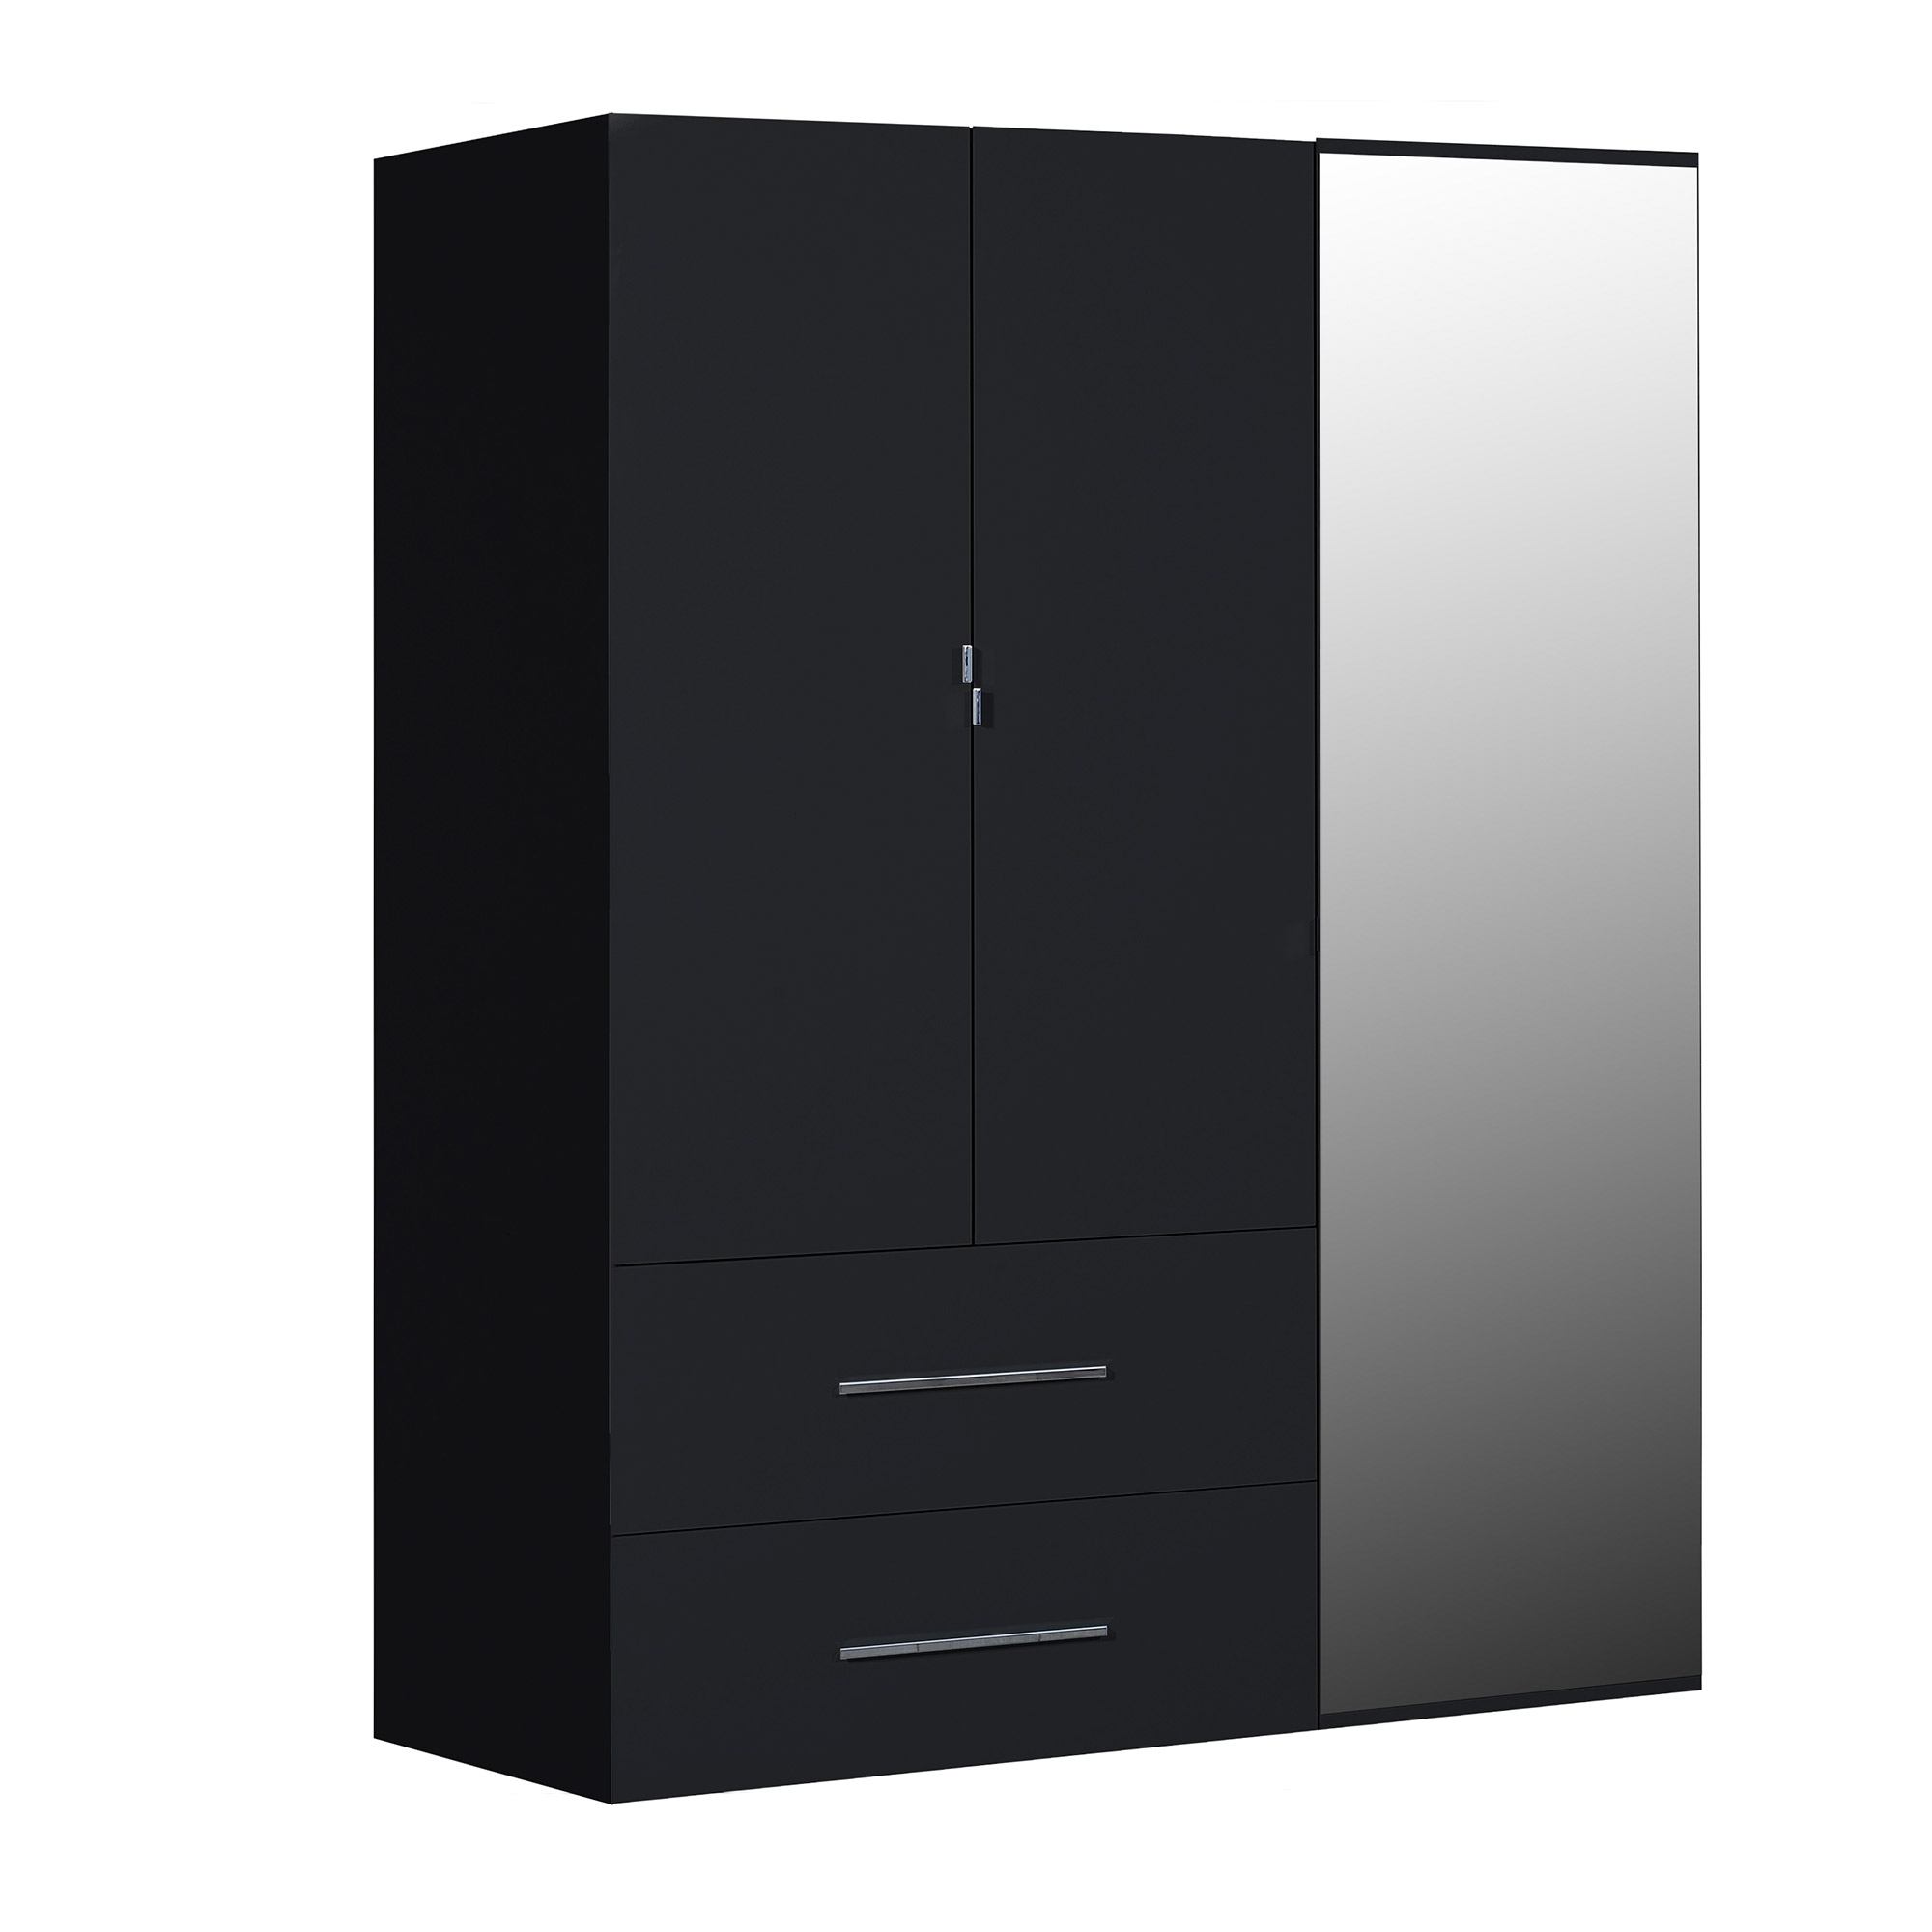 armoire noire laquee maison design. Black Bedroom Furniture Sets. Home Design Ideas